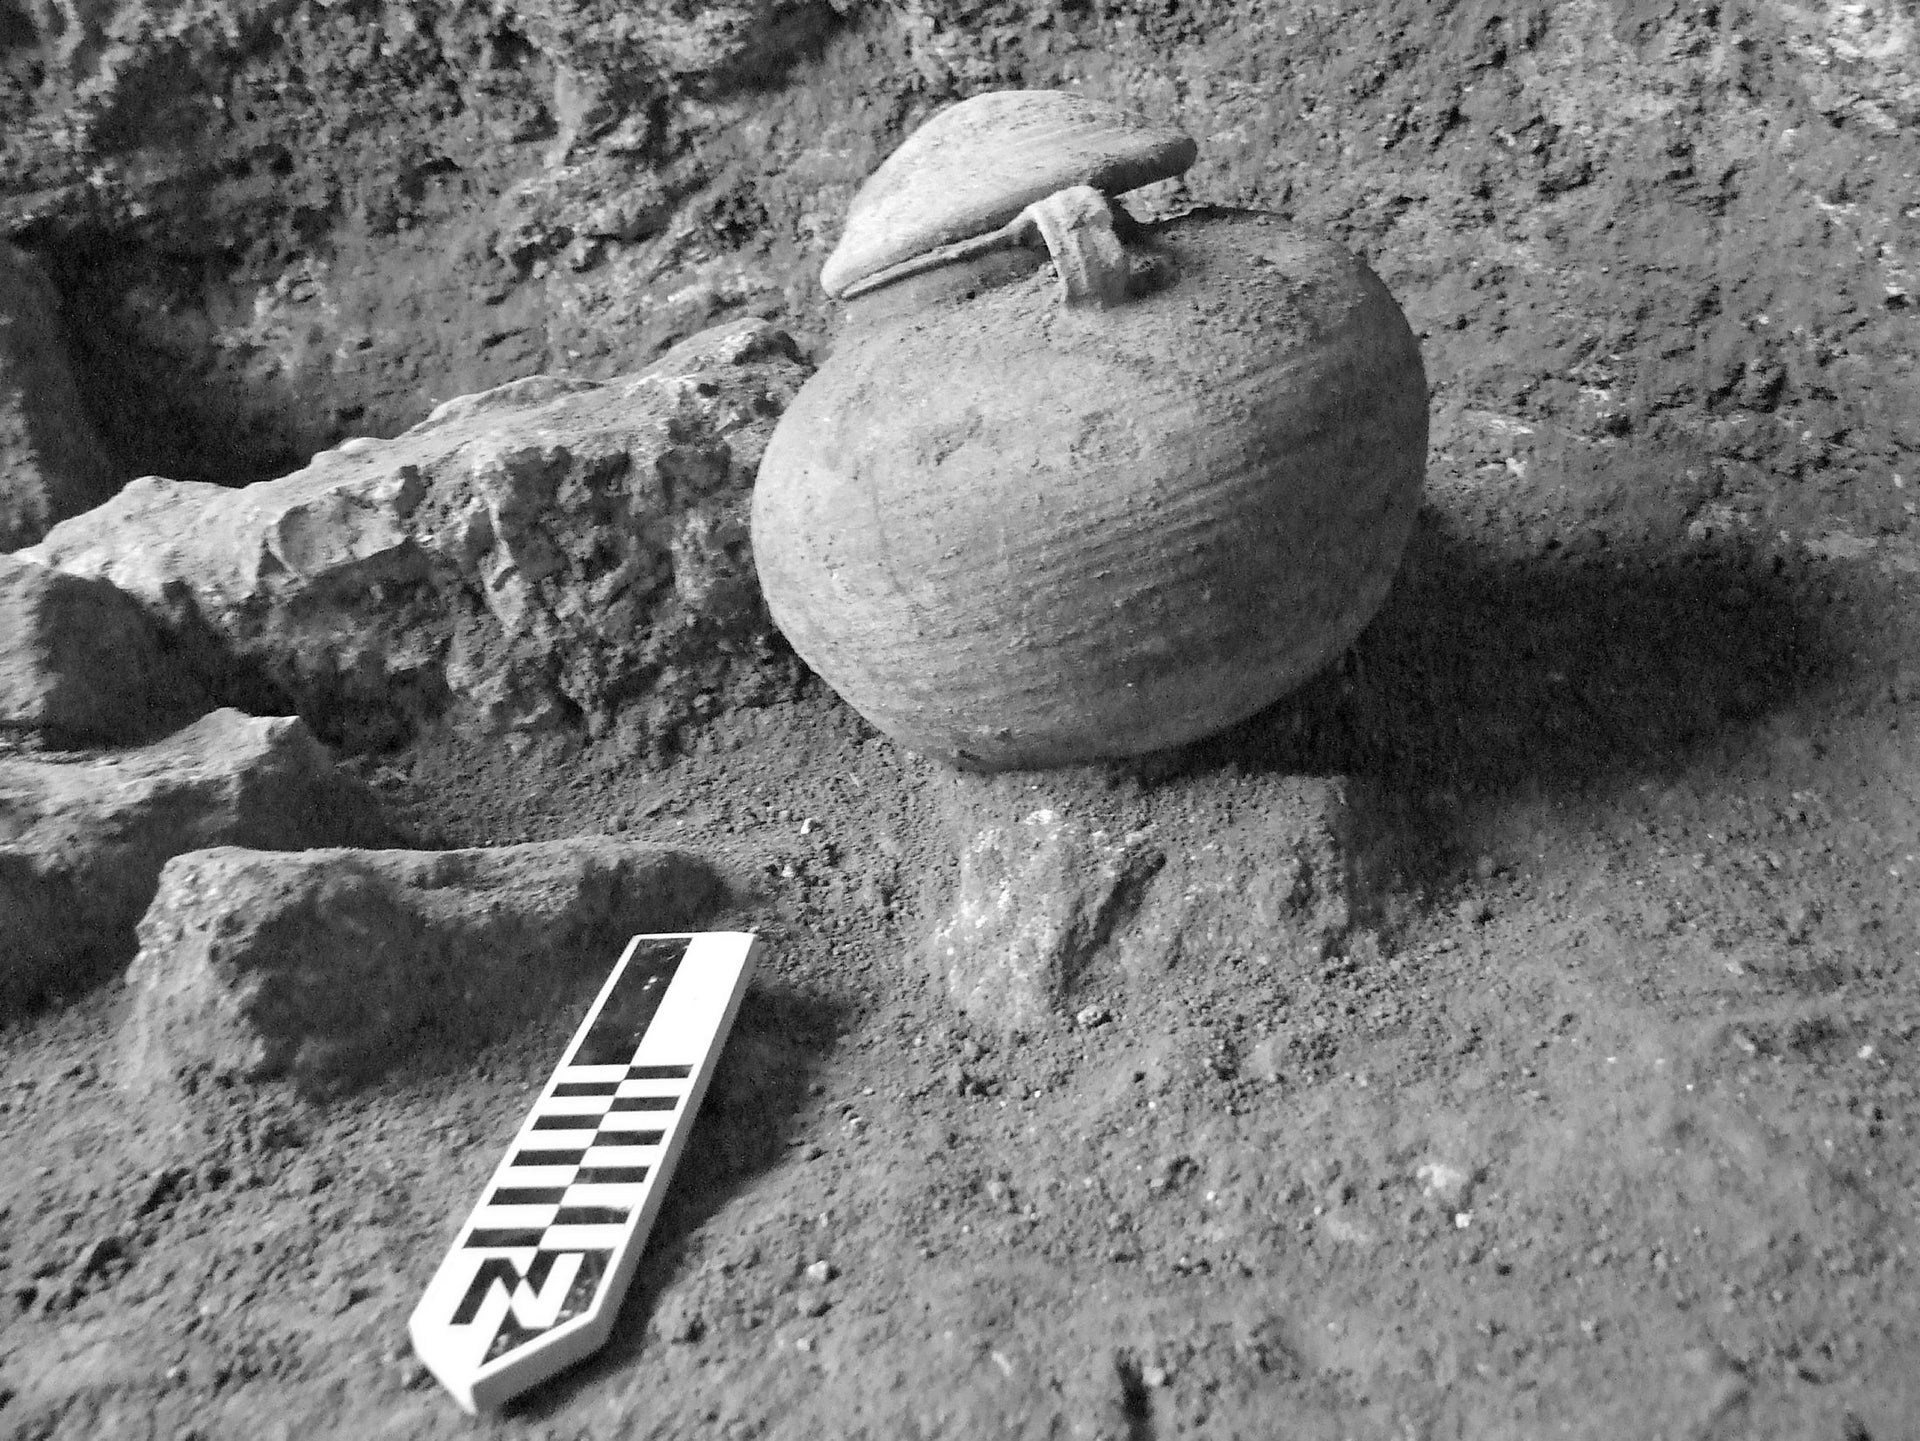 Roman cooking pot with the remains of a cremated Roman Legionary, found at the first base camp of Romans found in the East, by Tel Megiddo.